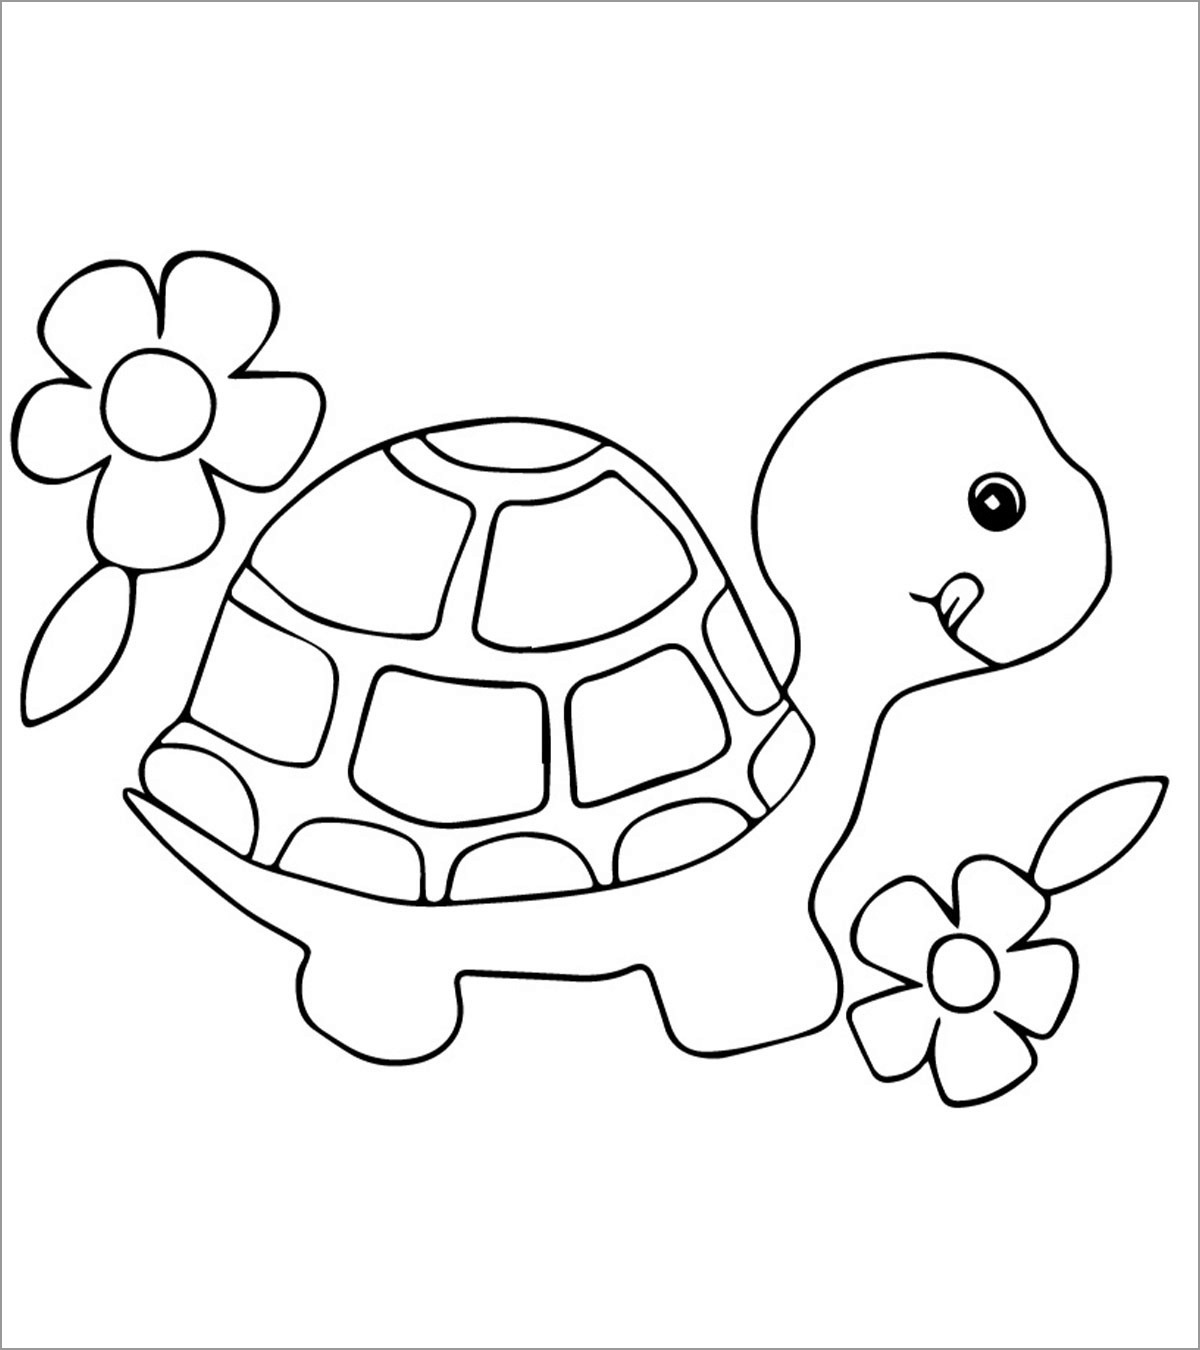 Turtle Coloring Pages for Kindergarten